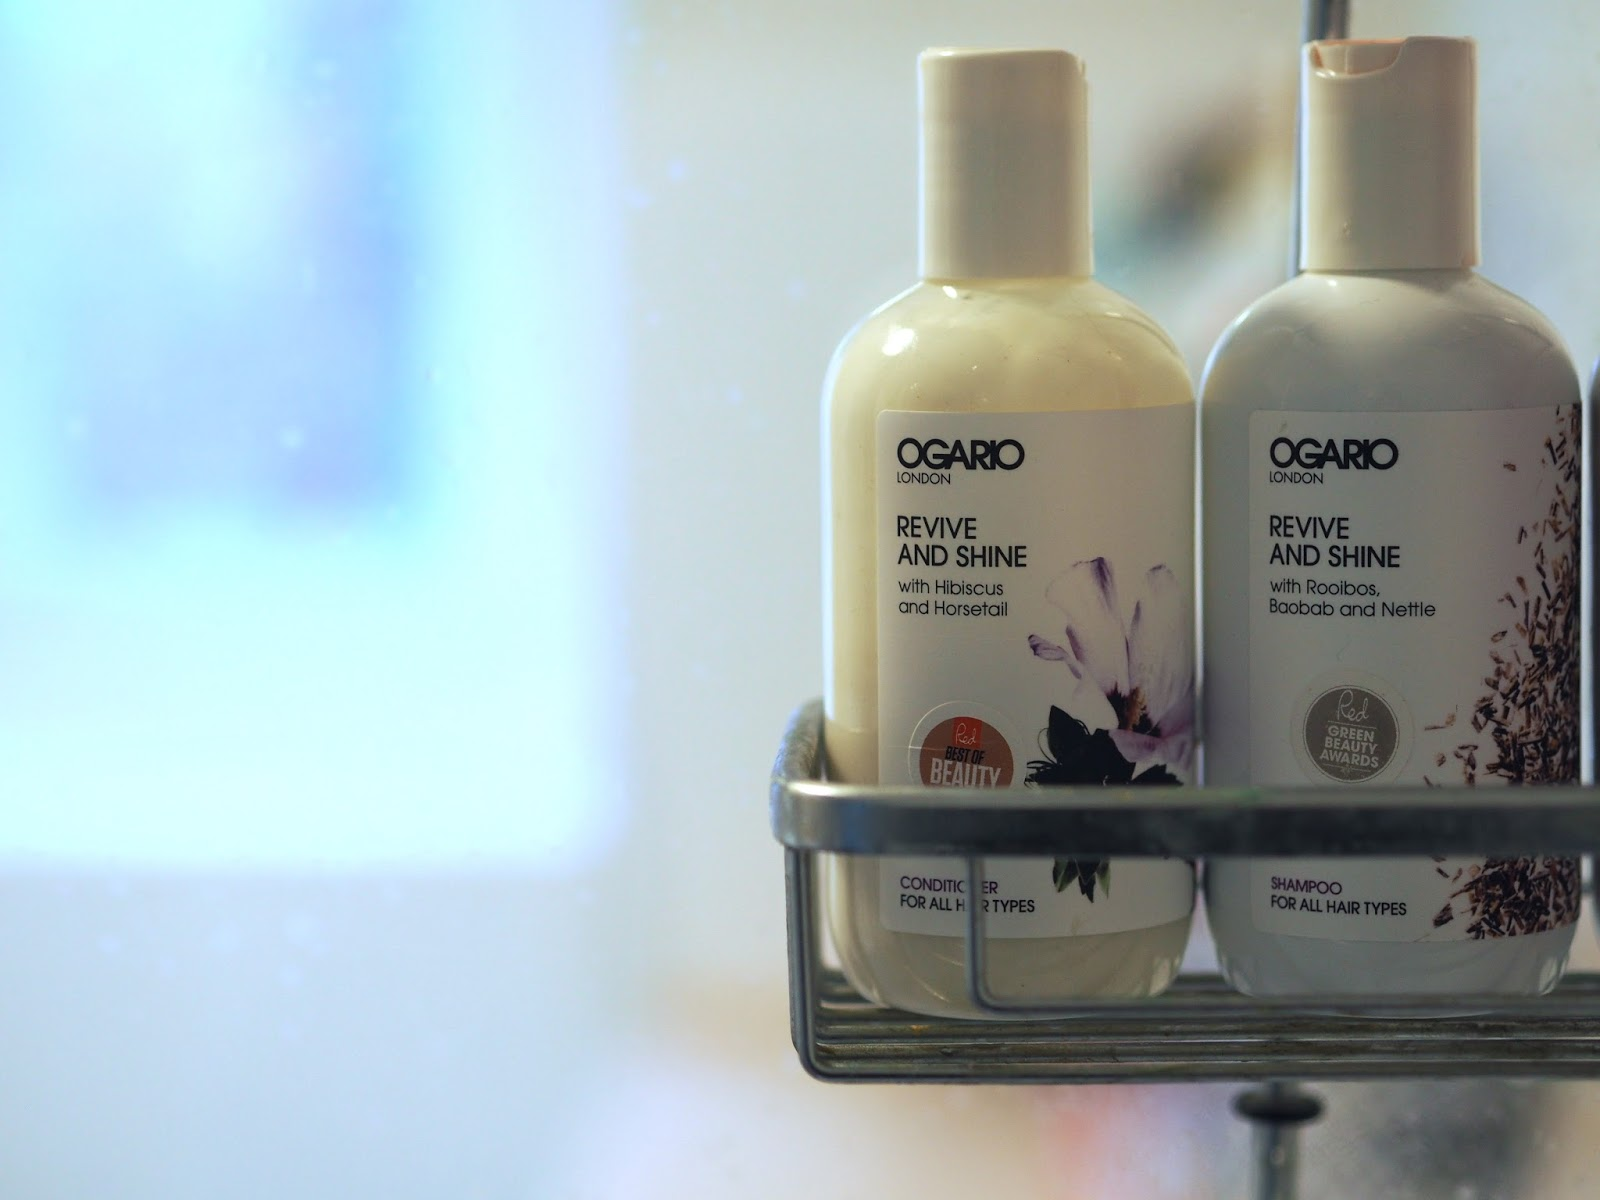 Ogario Revive and Shine Shampoo and Conditioner